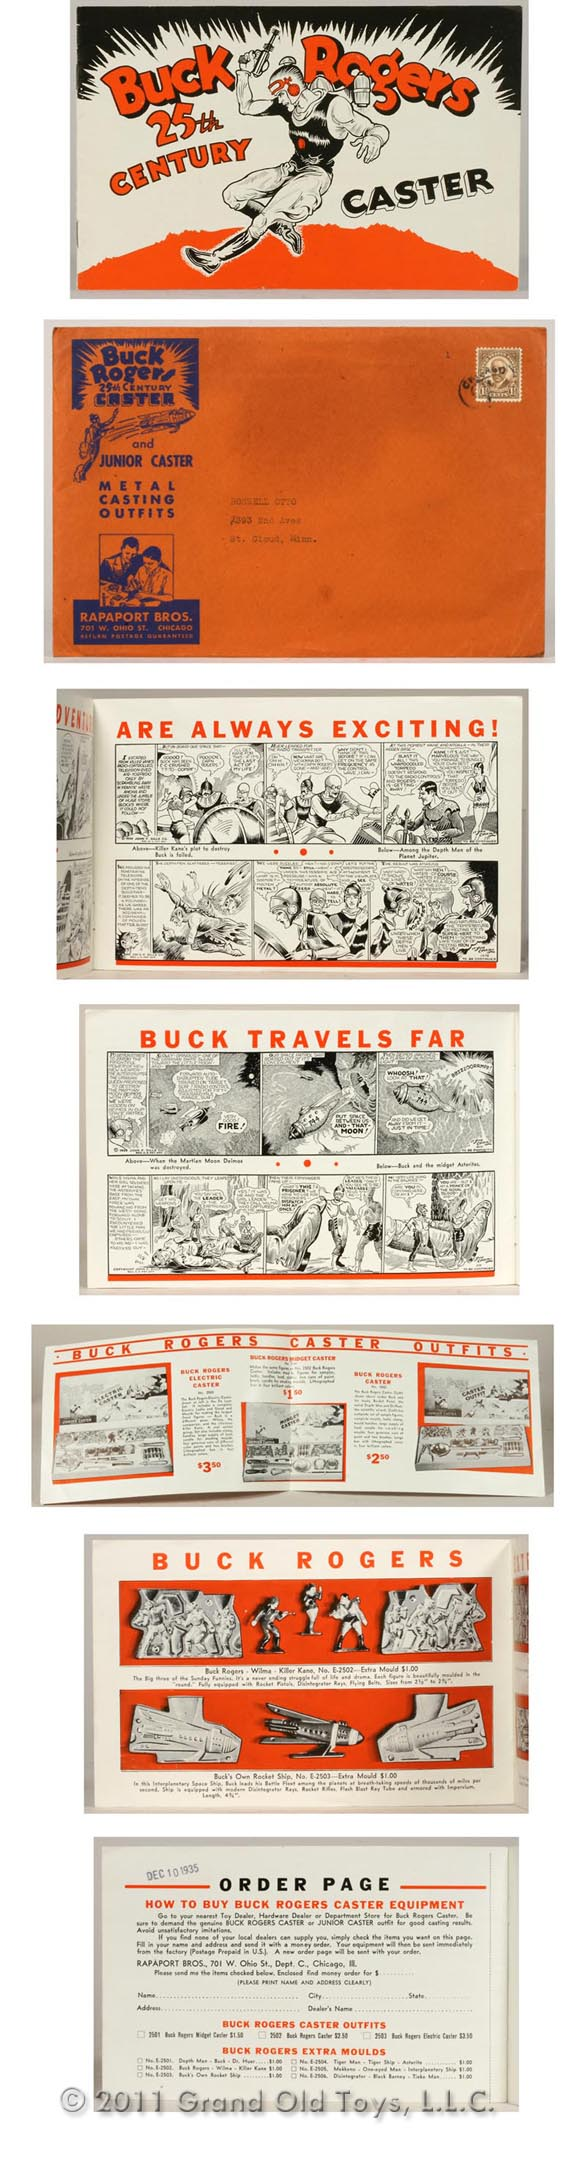 1935 Buck Rogers Caster Catalogs with Original Illustrated Envelope